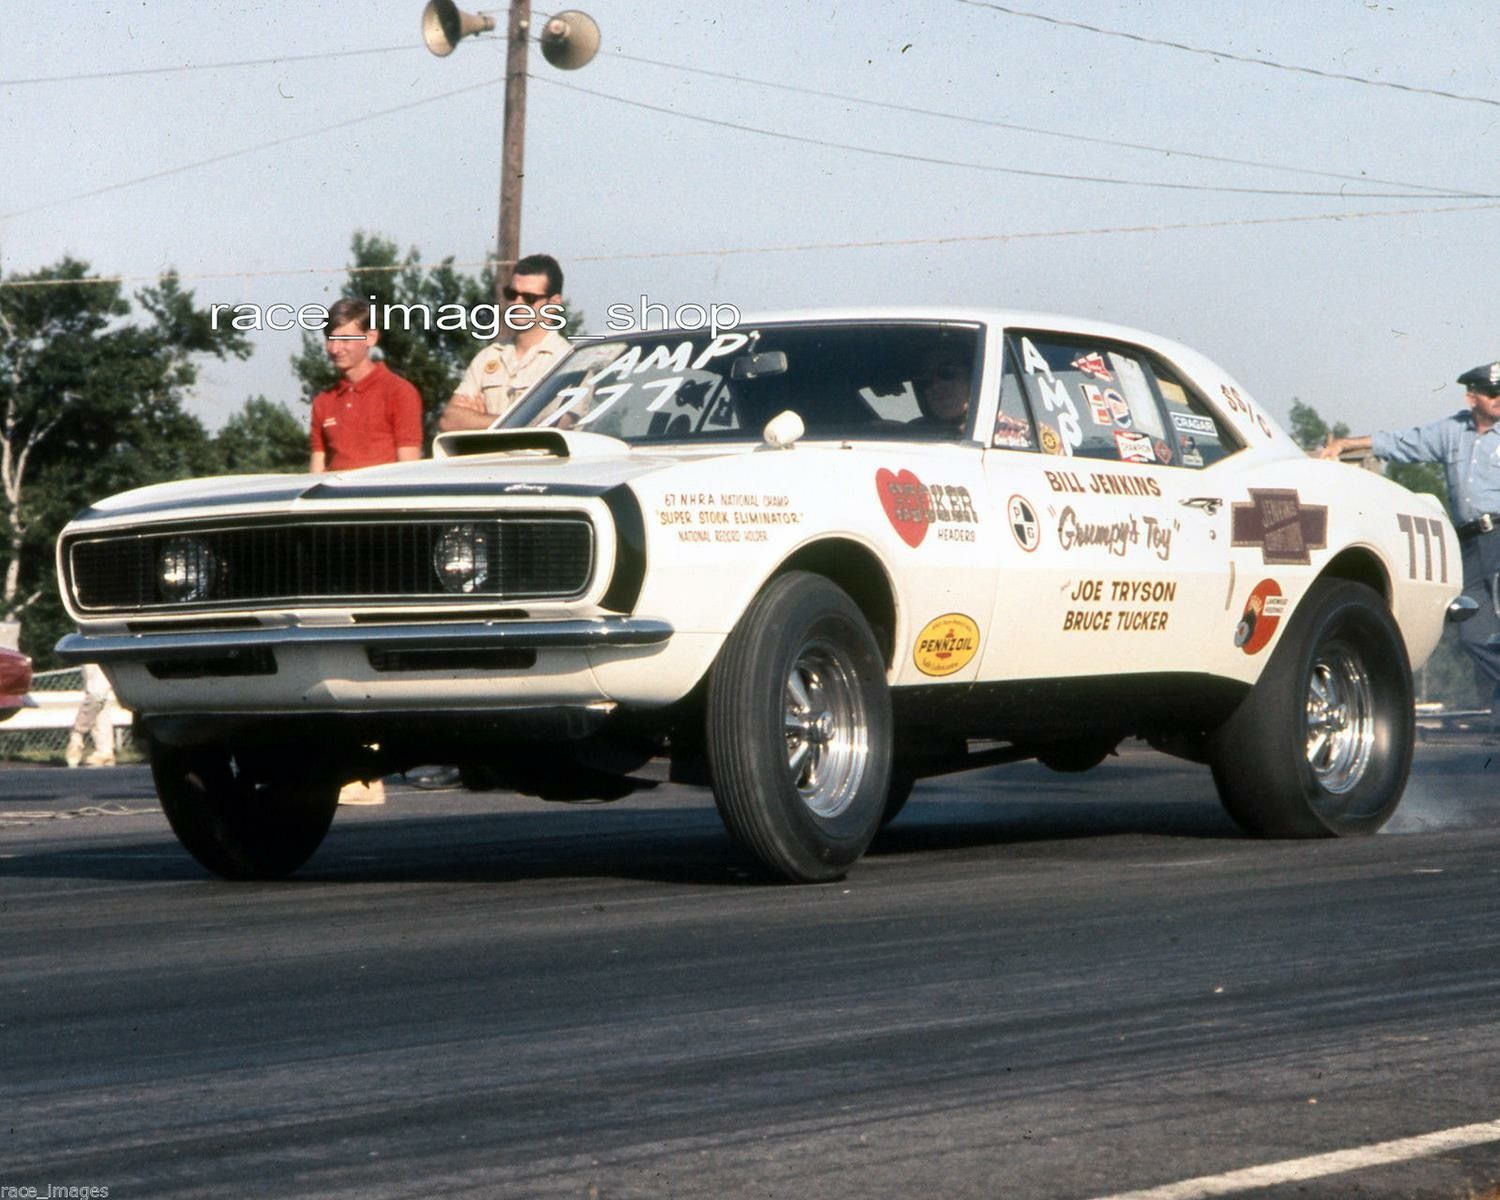 Pin By Steve Davies On Bill Grumpy Jenkins Drag Racing Cars Camaro Chevrolet Camaro 1967